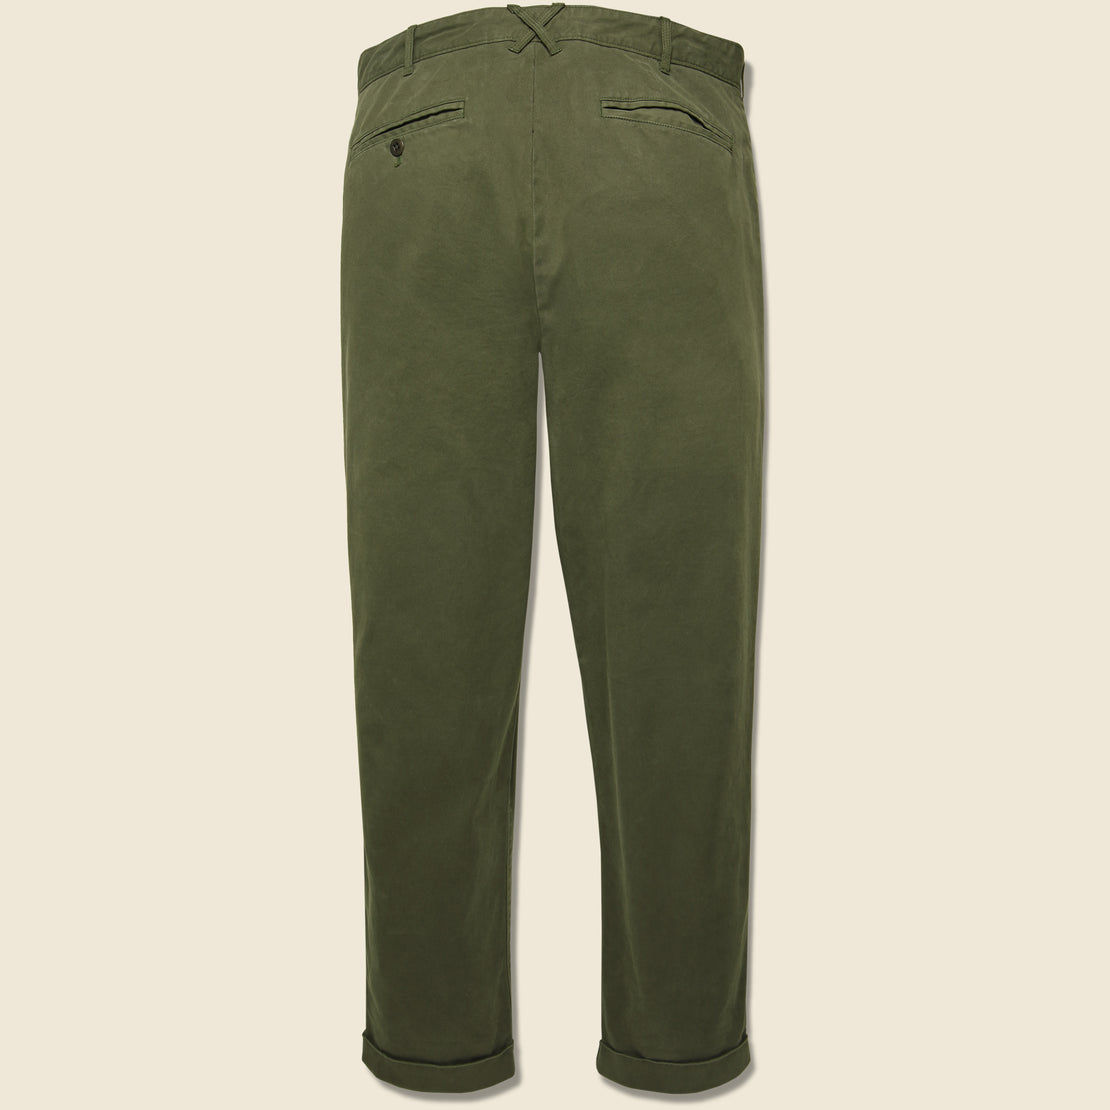 Standard Pleated Chino - Military Olive